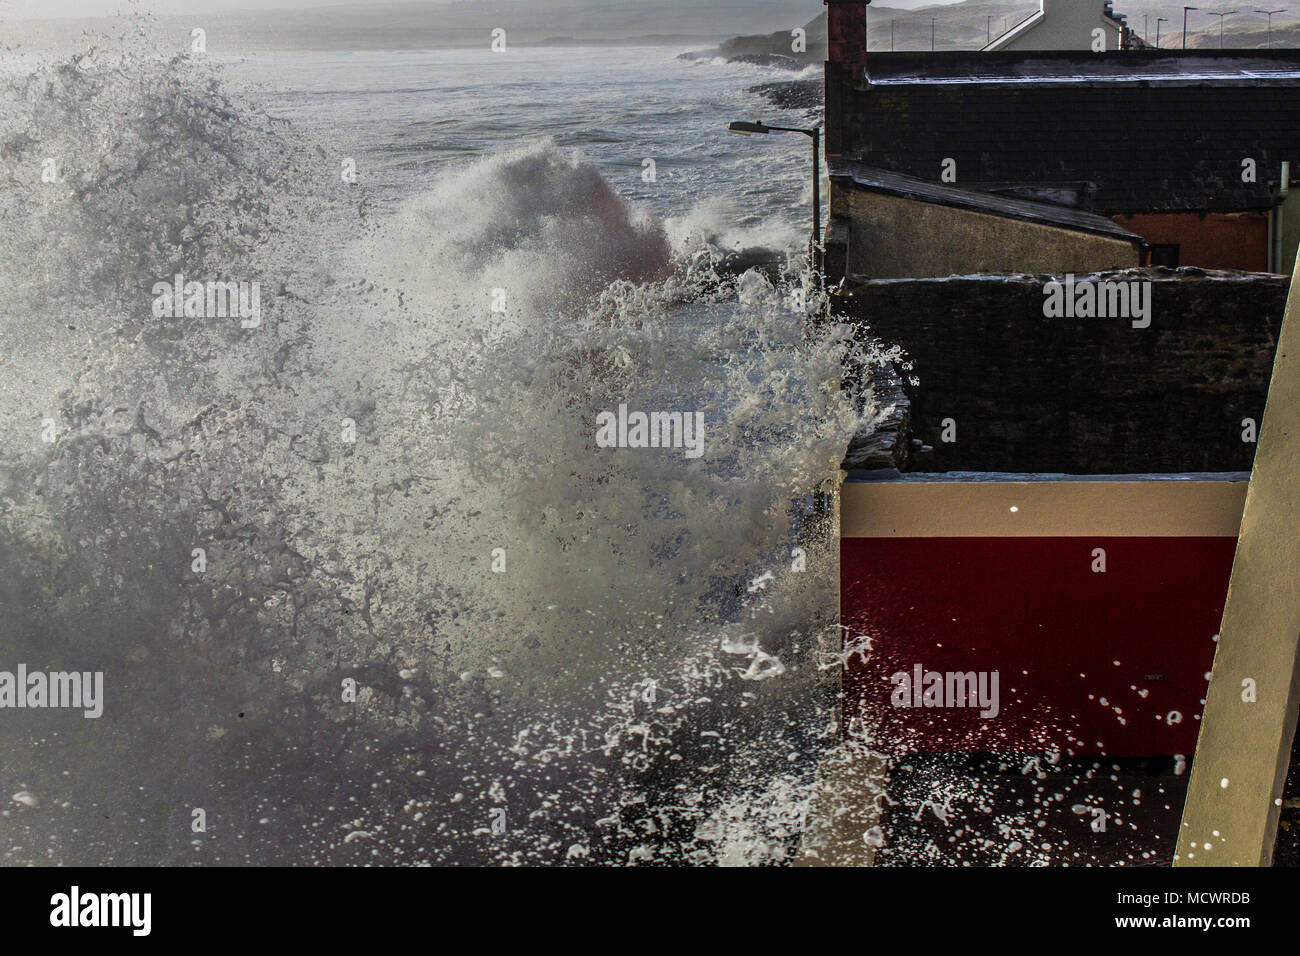 Wave coming over promenade and hitting buildings taken from above - Stock Image